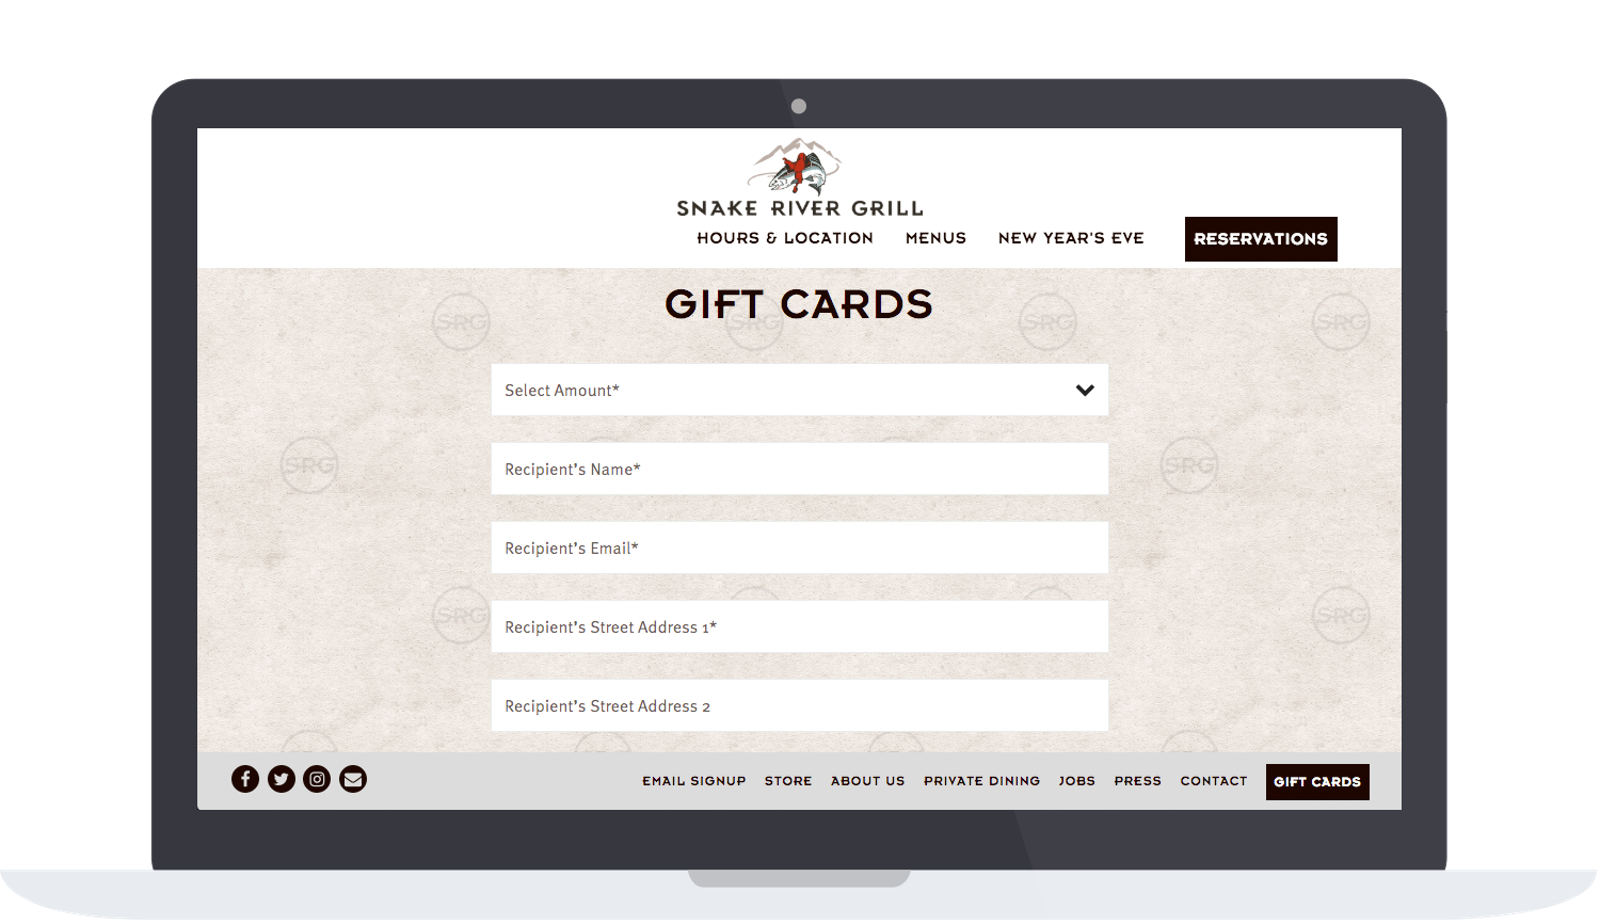 Snake River Grill gift card page